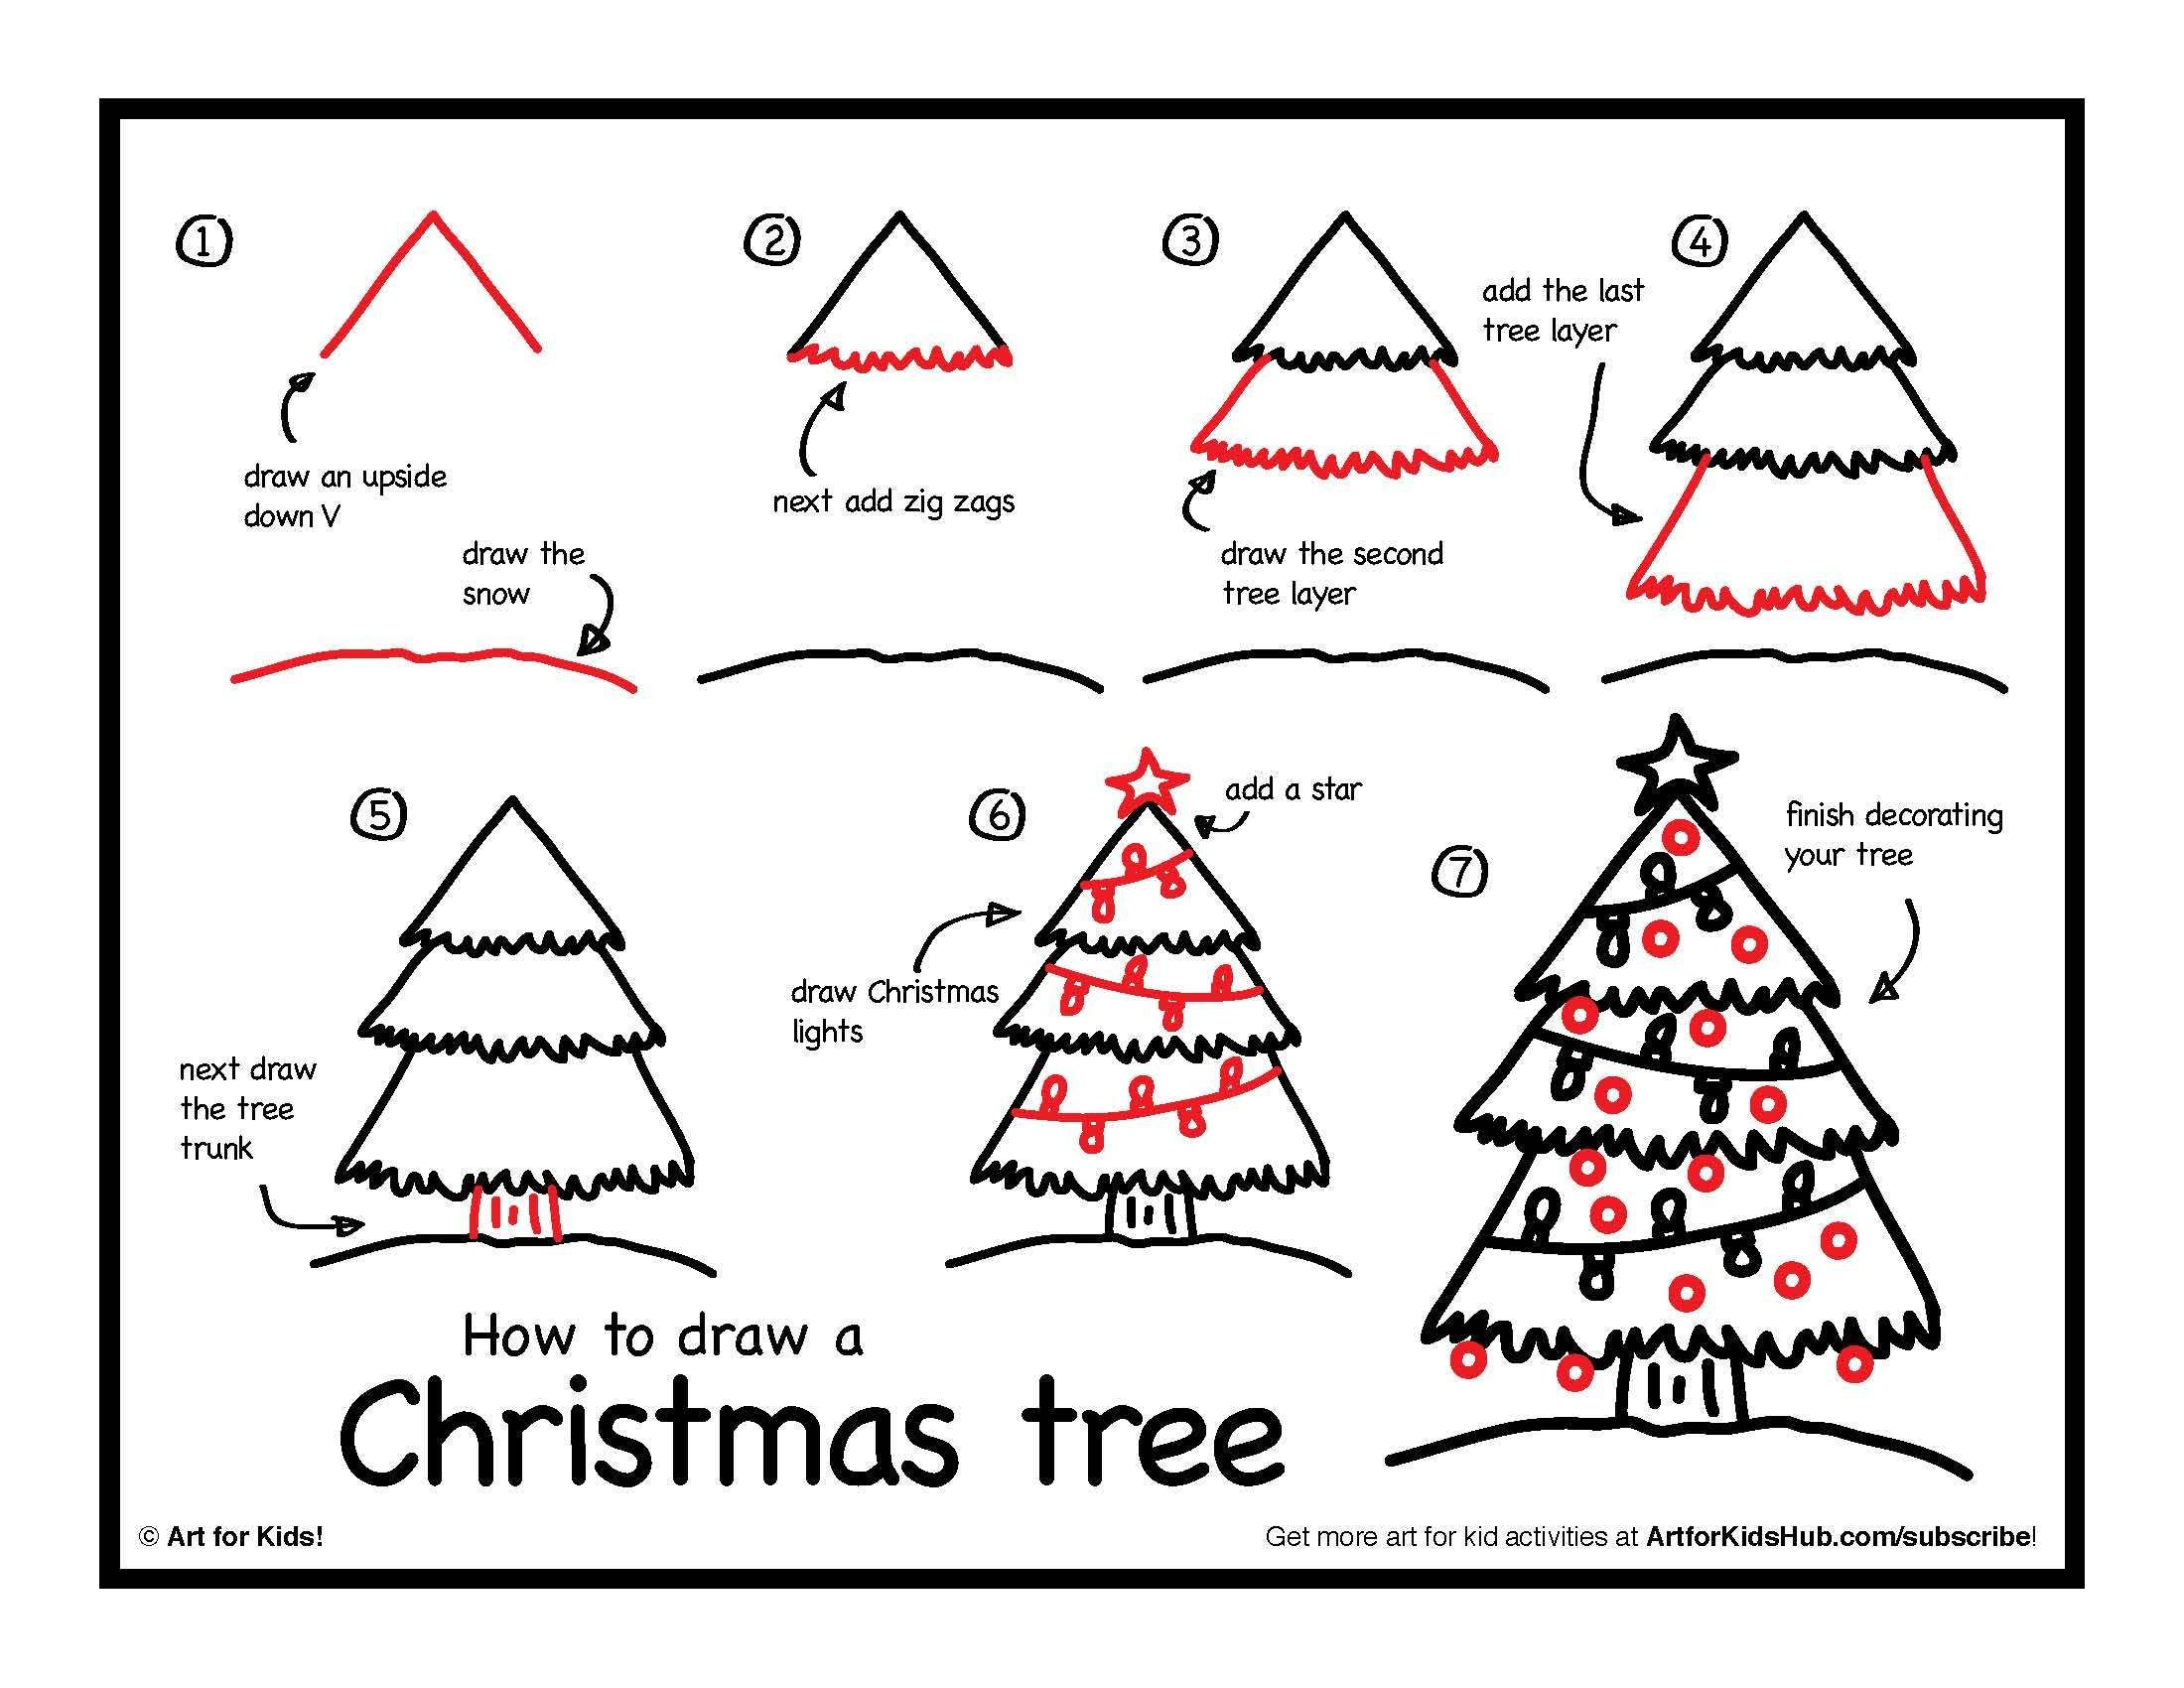 Pin By Monang Harahap On The Draw Art For Kids Hub Christmas Tree Drawing Christmas Drawings For Kids